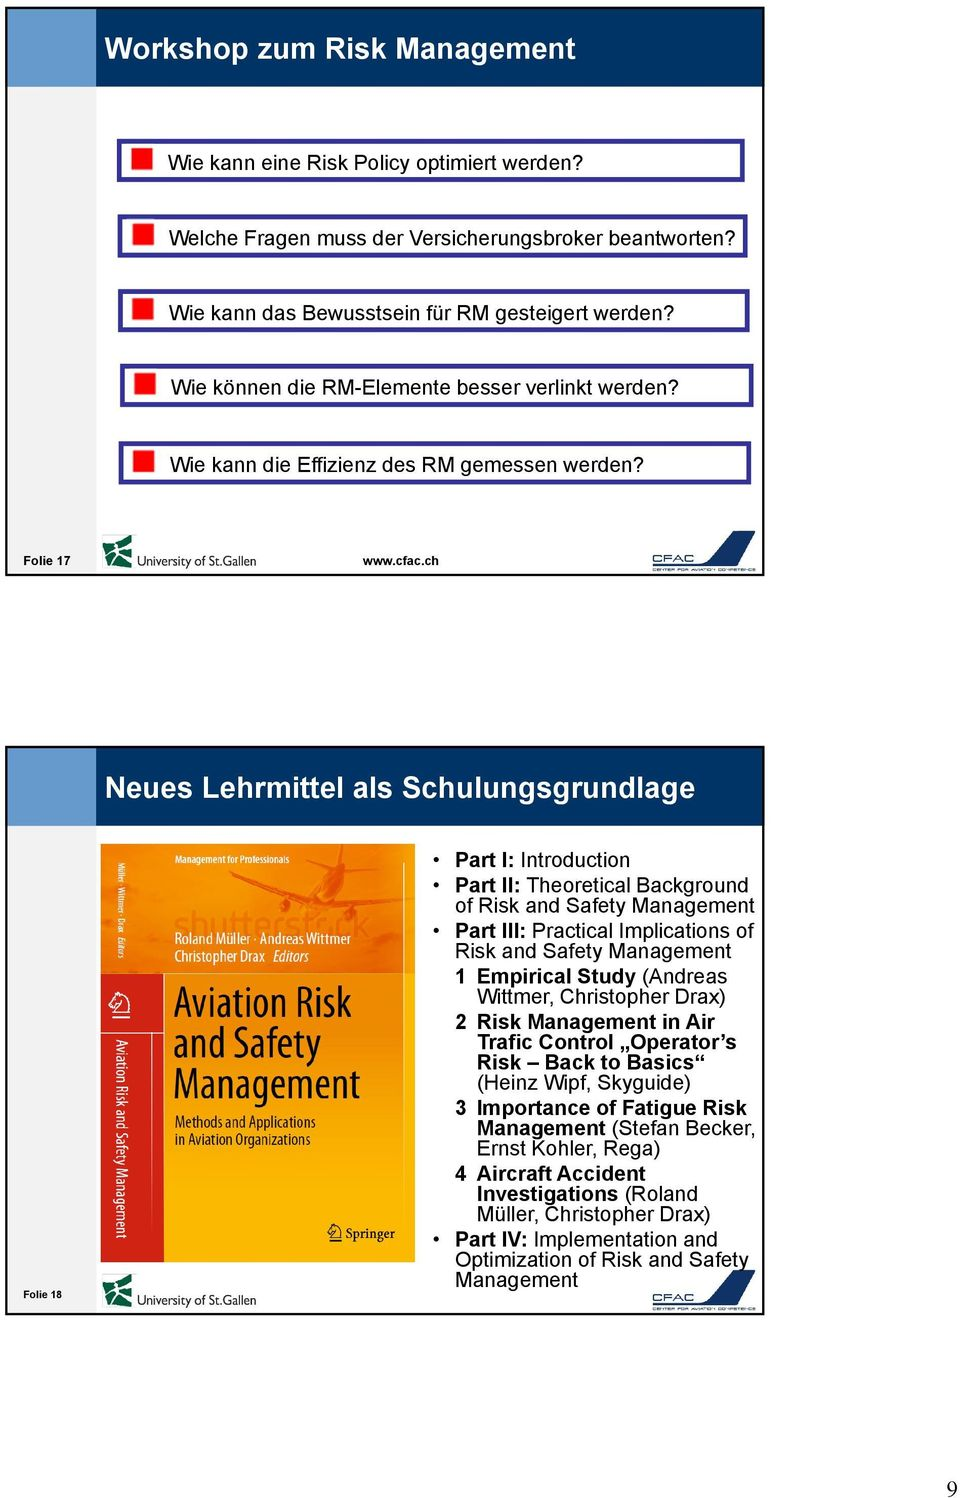 Folie 17 Neues Lehrmittel als Schulungsgrundlage Folie 18 Part I: Introduction Part II: Theoretical Background of Risk and Safety Management Part III: Practical Implications of Risk and Safety